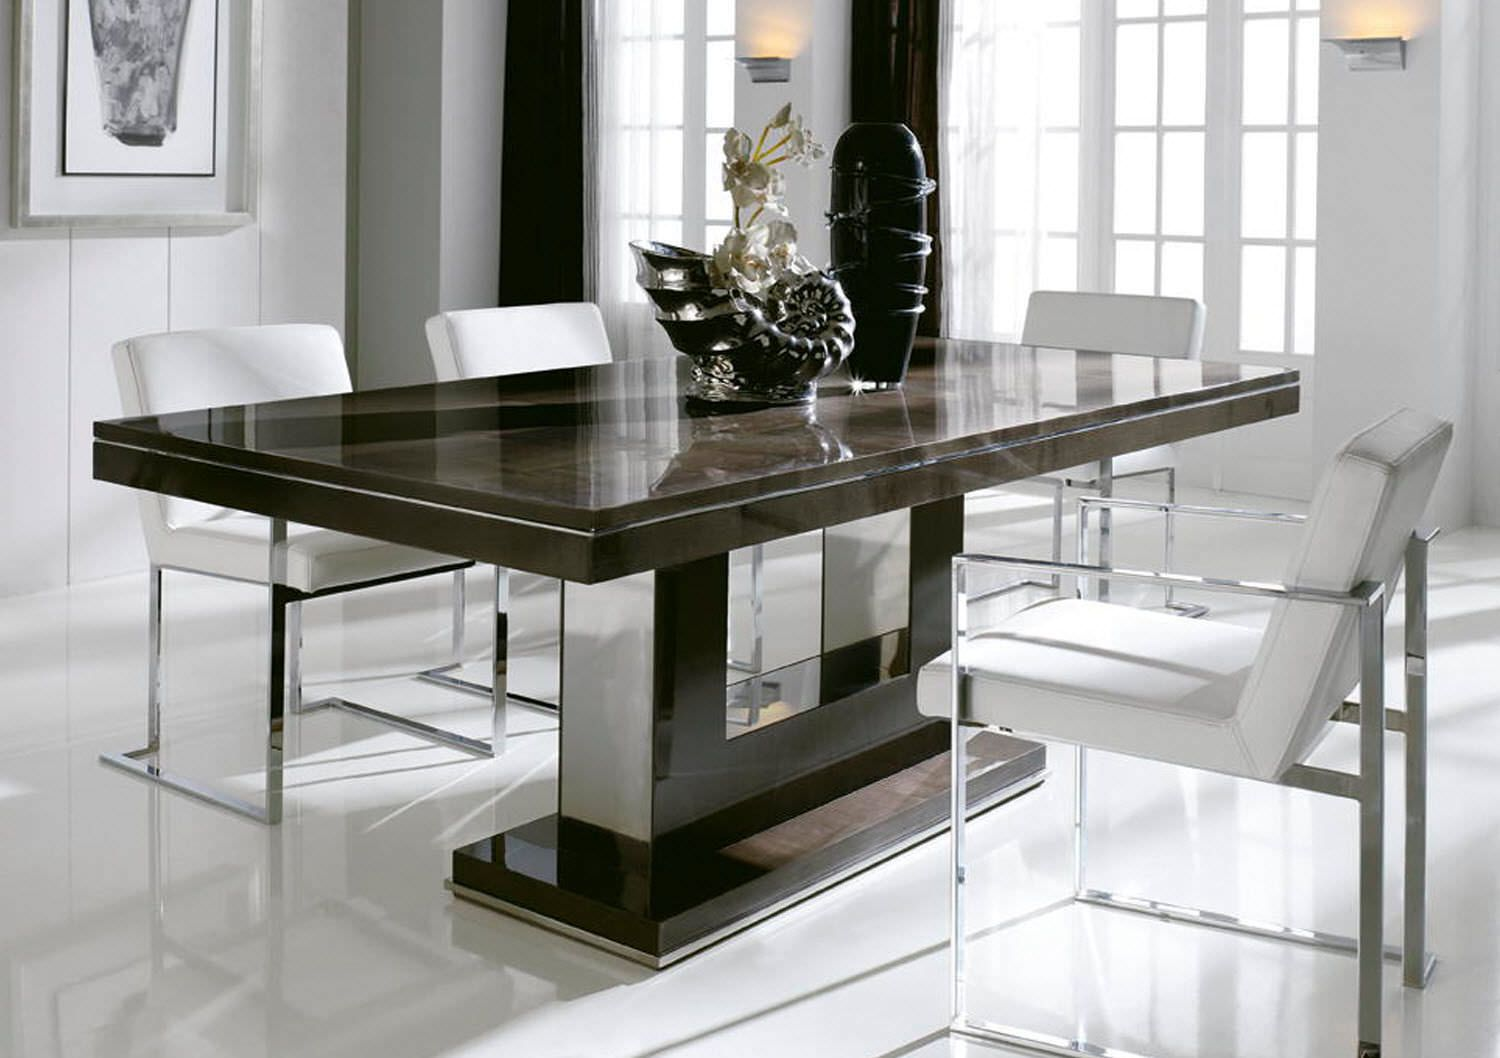 Interesting modern dining table dining room pinterest marble top dining table modern - Modern dining table ideas ...